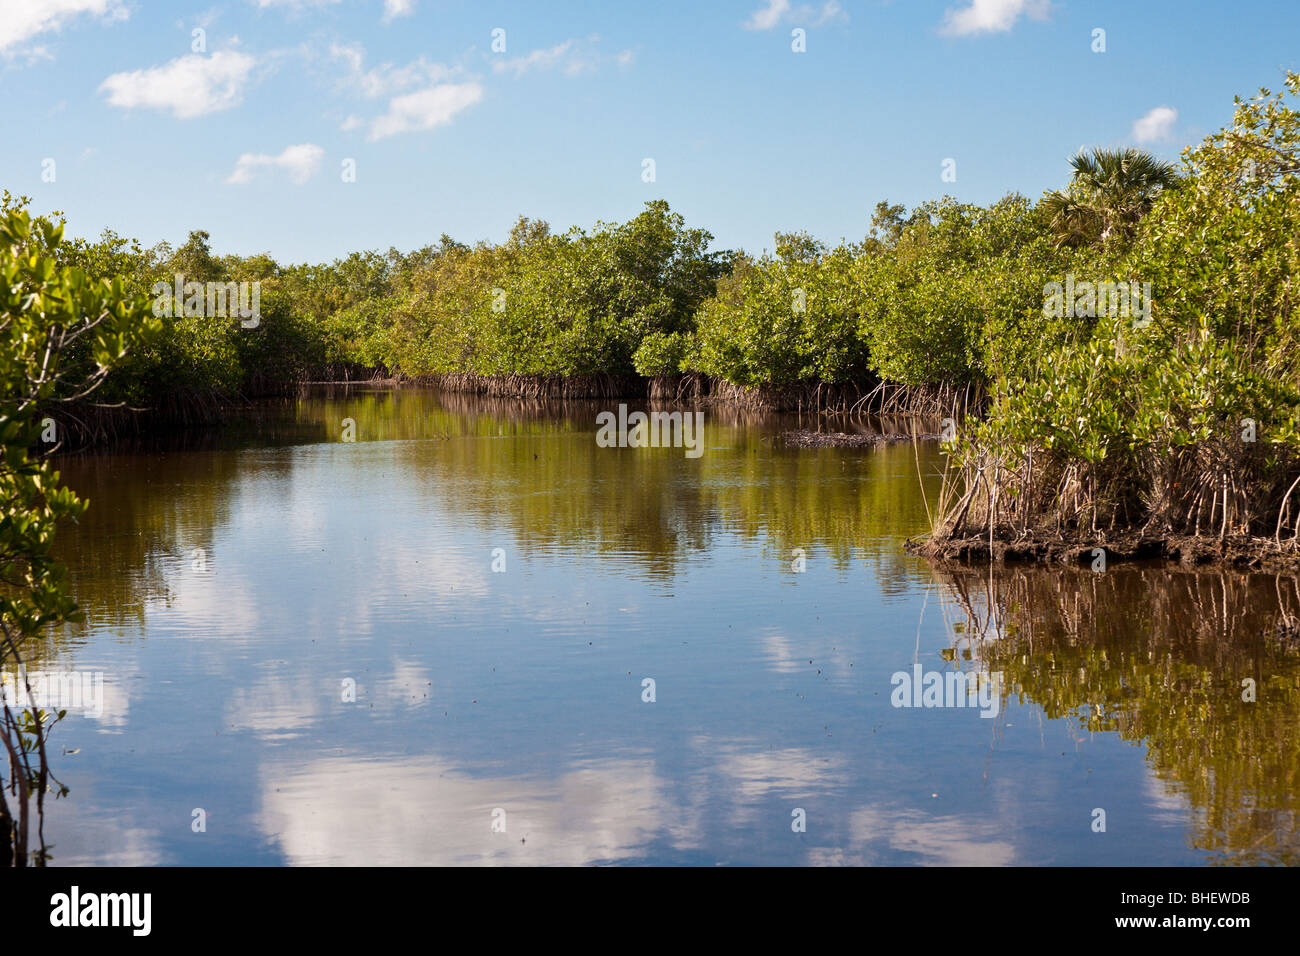 Ochopee, FL - Nov 2008 - Mangrove swamp with channels for airboat tours in the Everglades along Alligator Alley - Stock Image